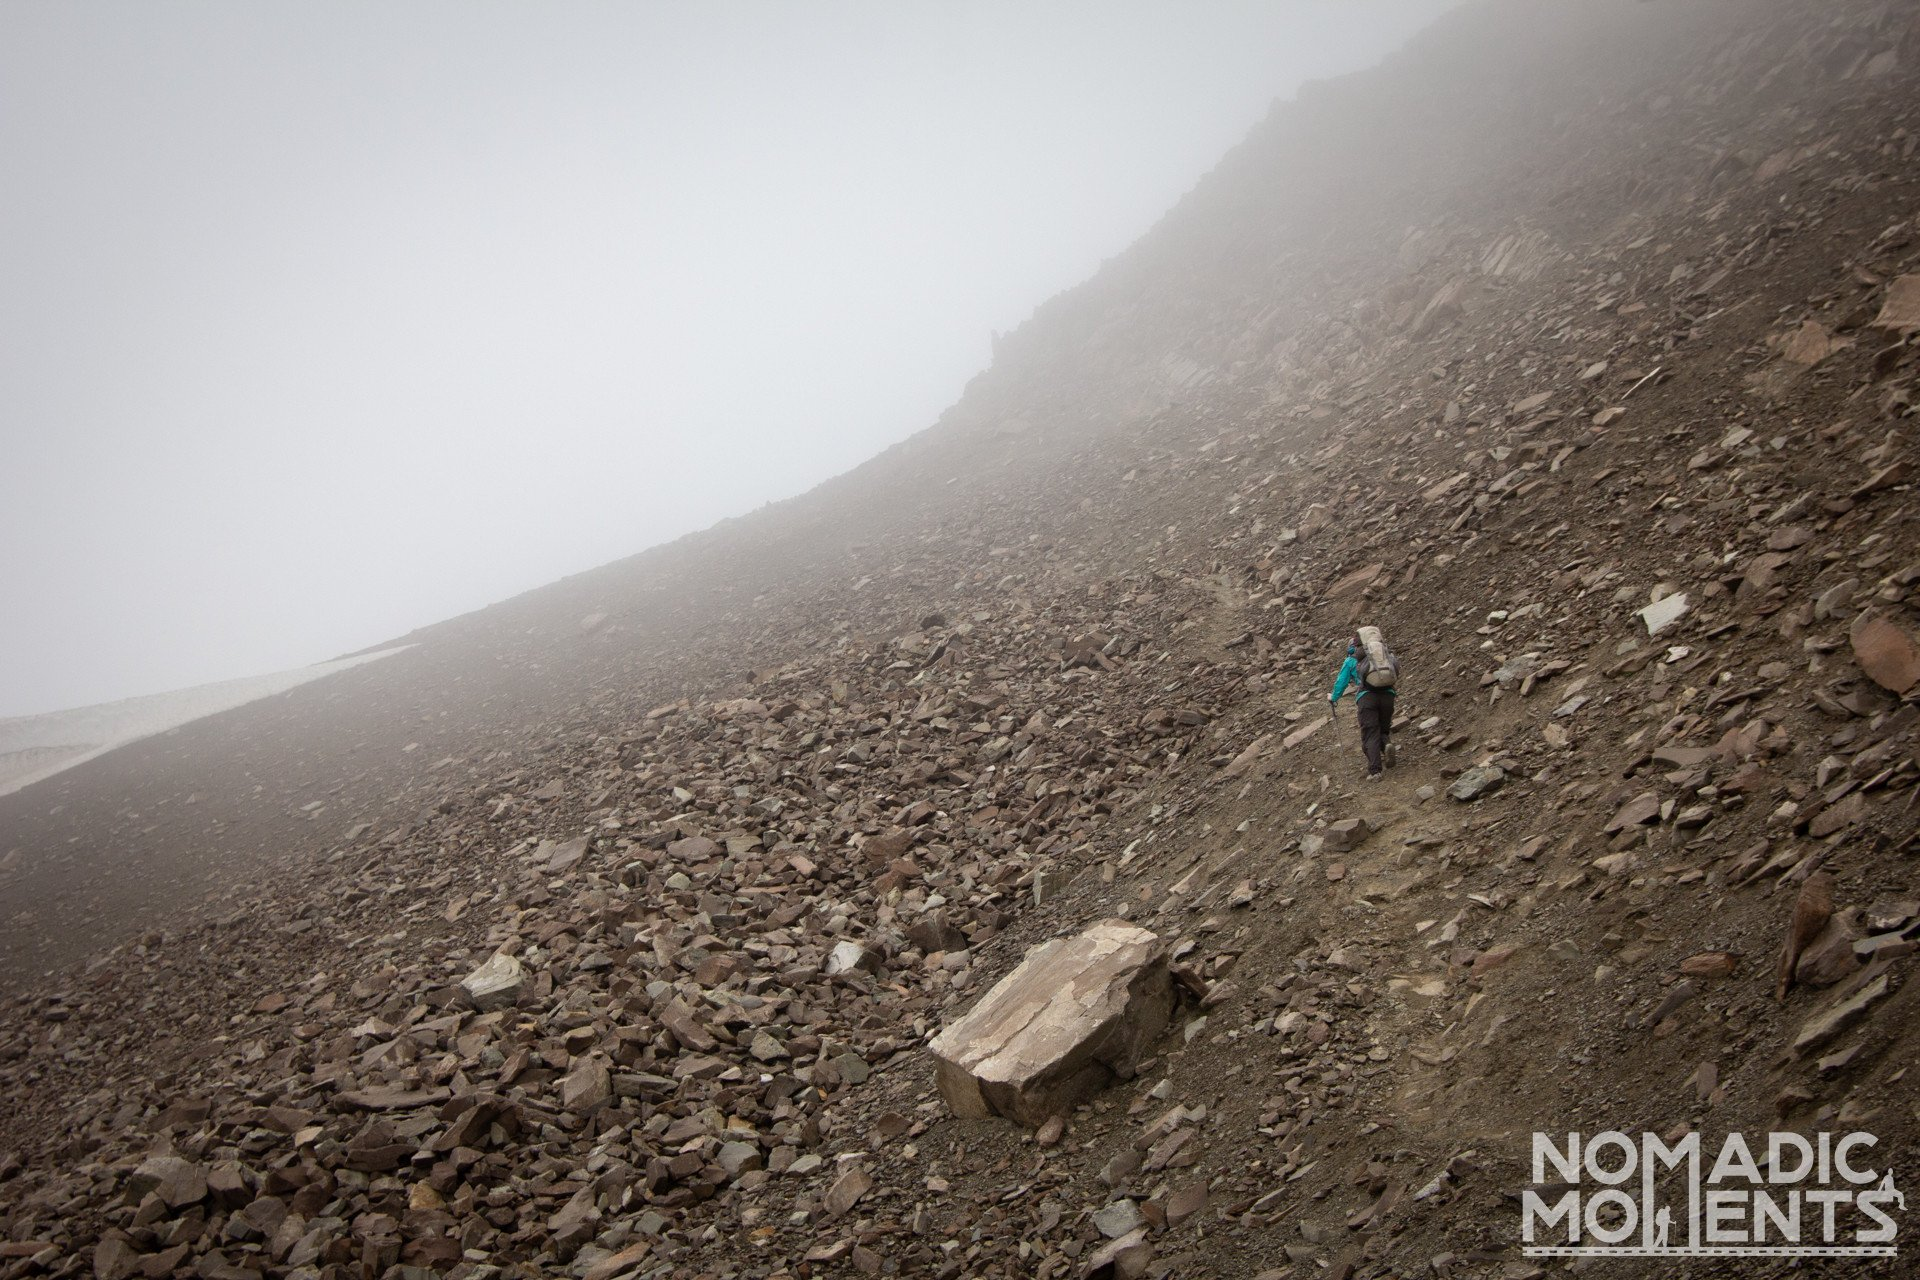 Climbing The Notch - Backpacking the Skyline Trail